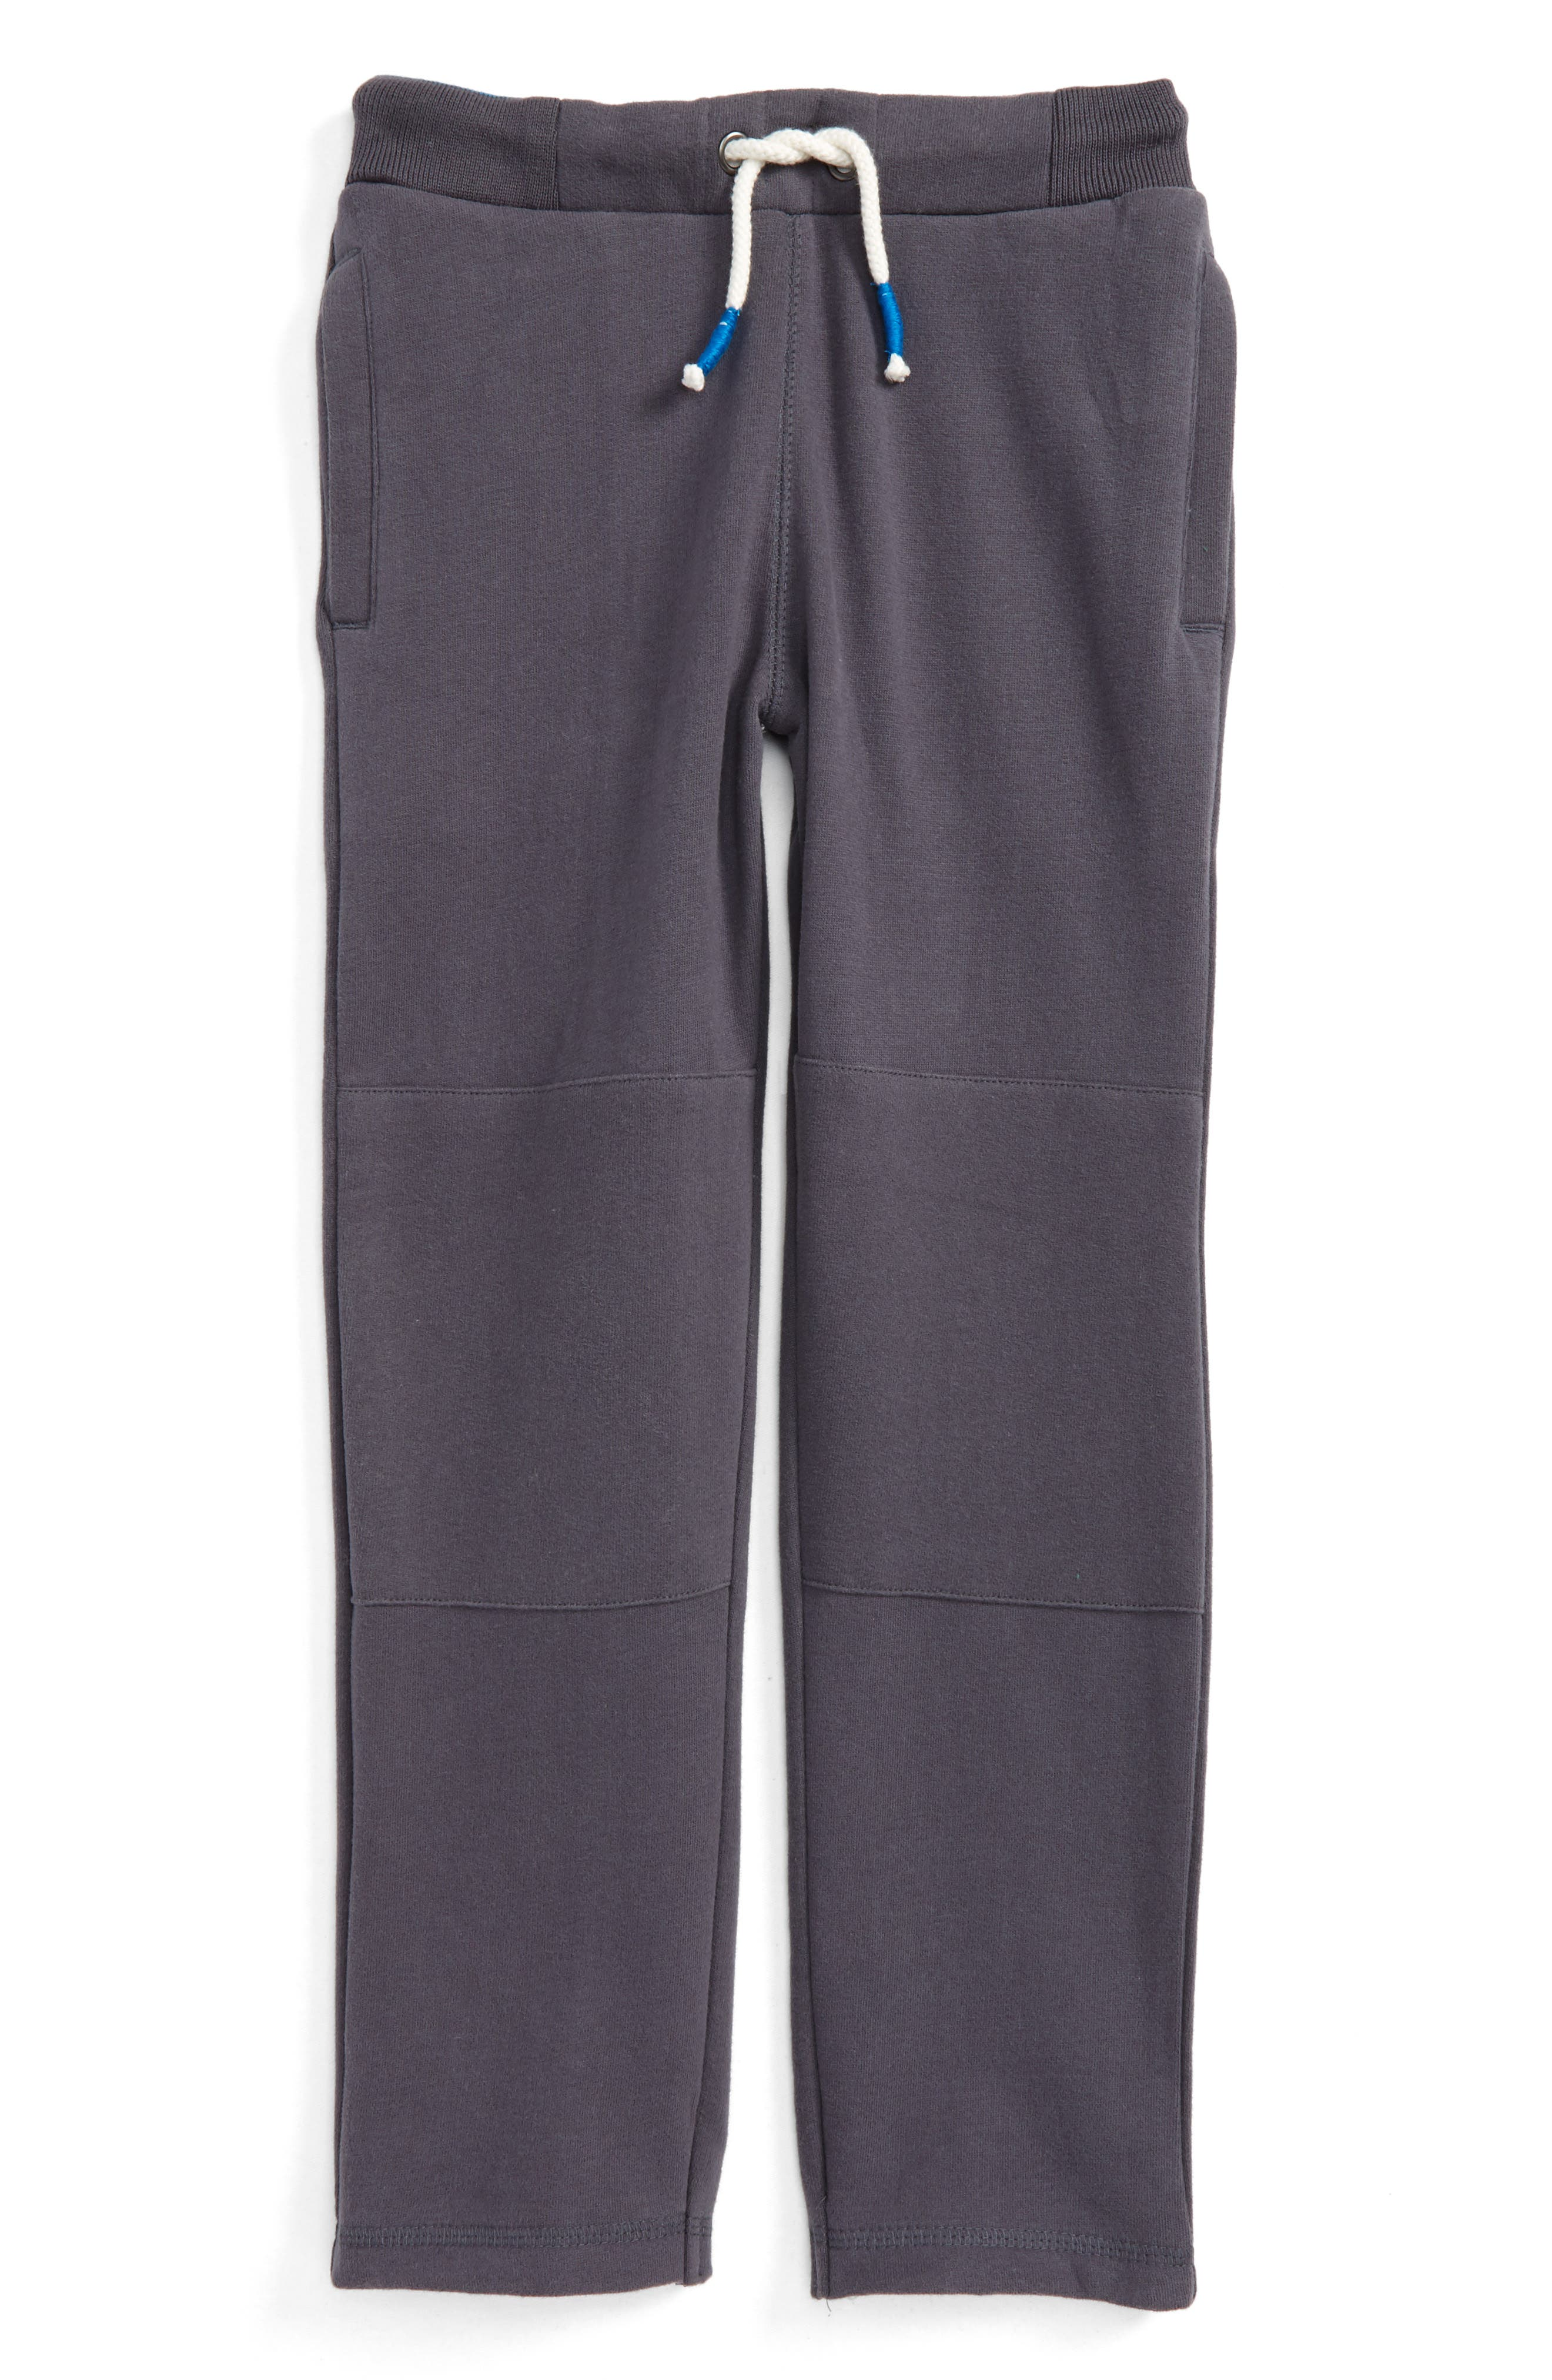 Warrior Knee Sweatpants,                             Main thumbnail 1, color,                             024